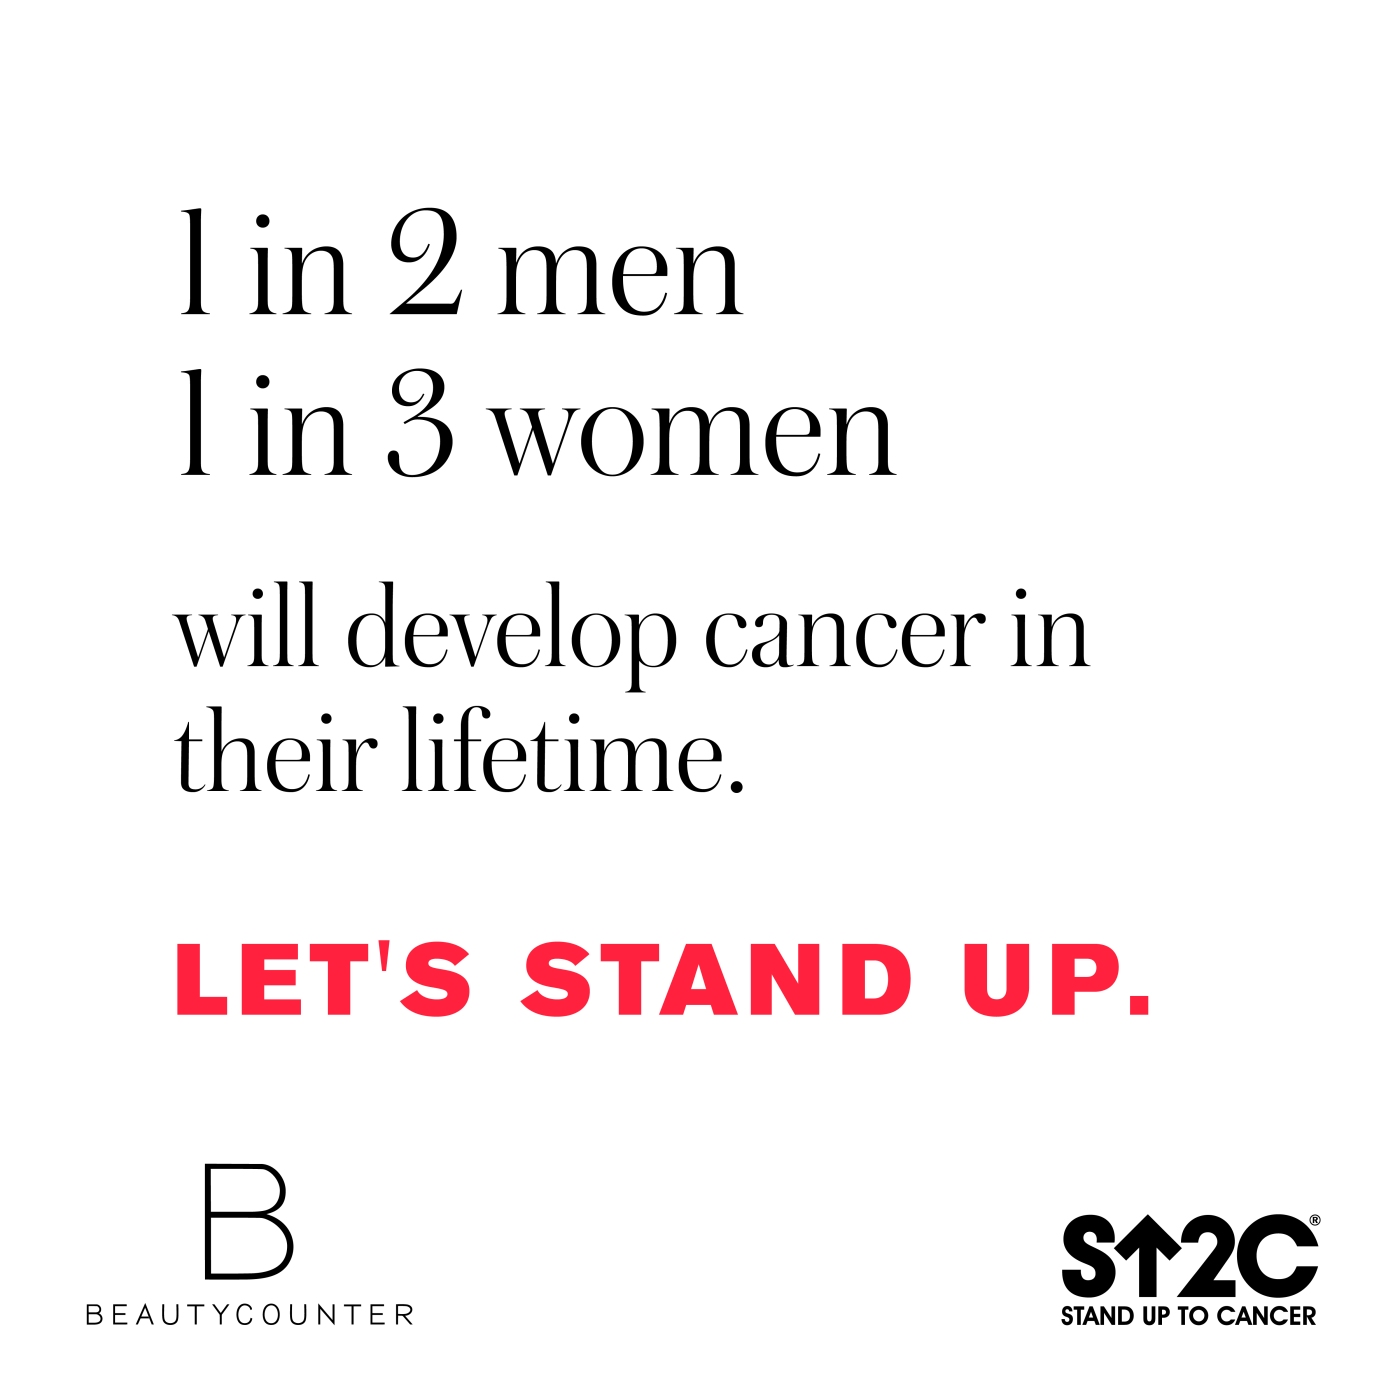 Better Beauty Vermont 1 in 2 men 1 in 3 women will develop cancer